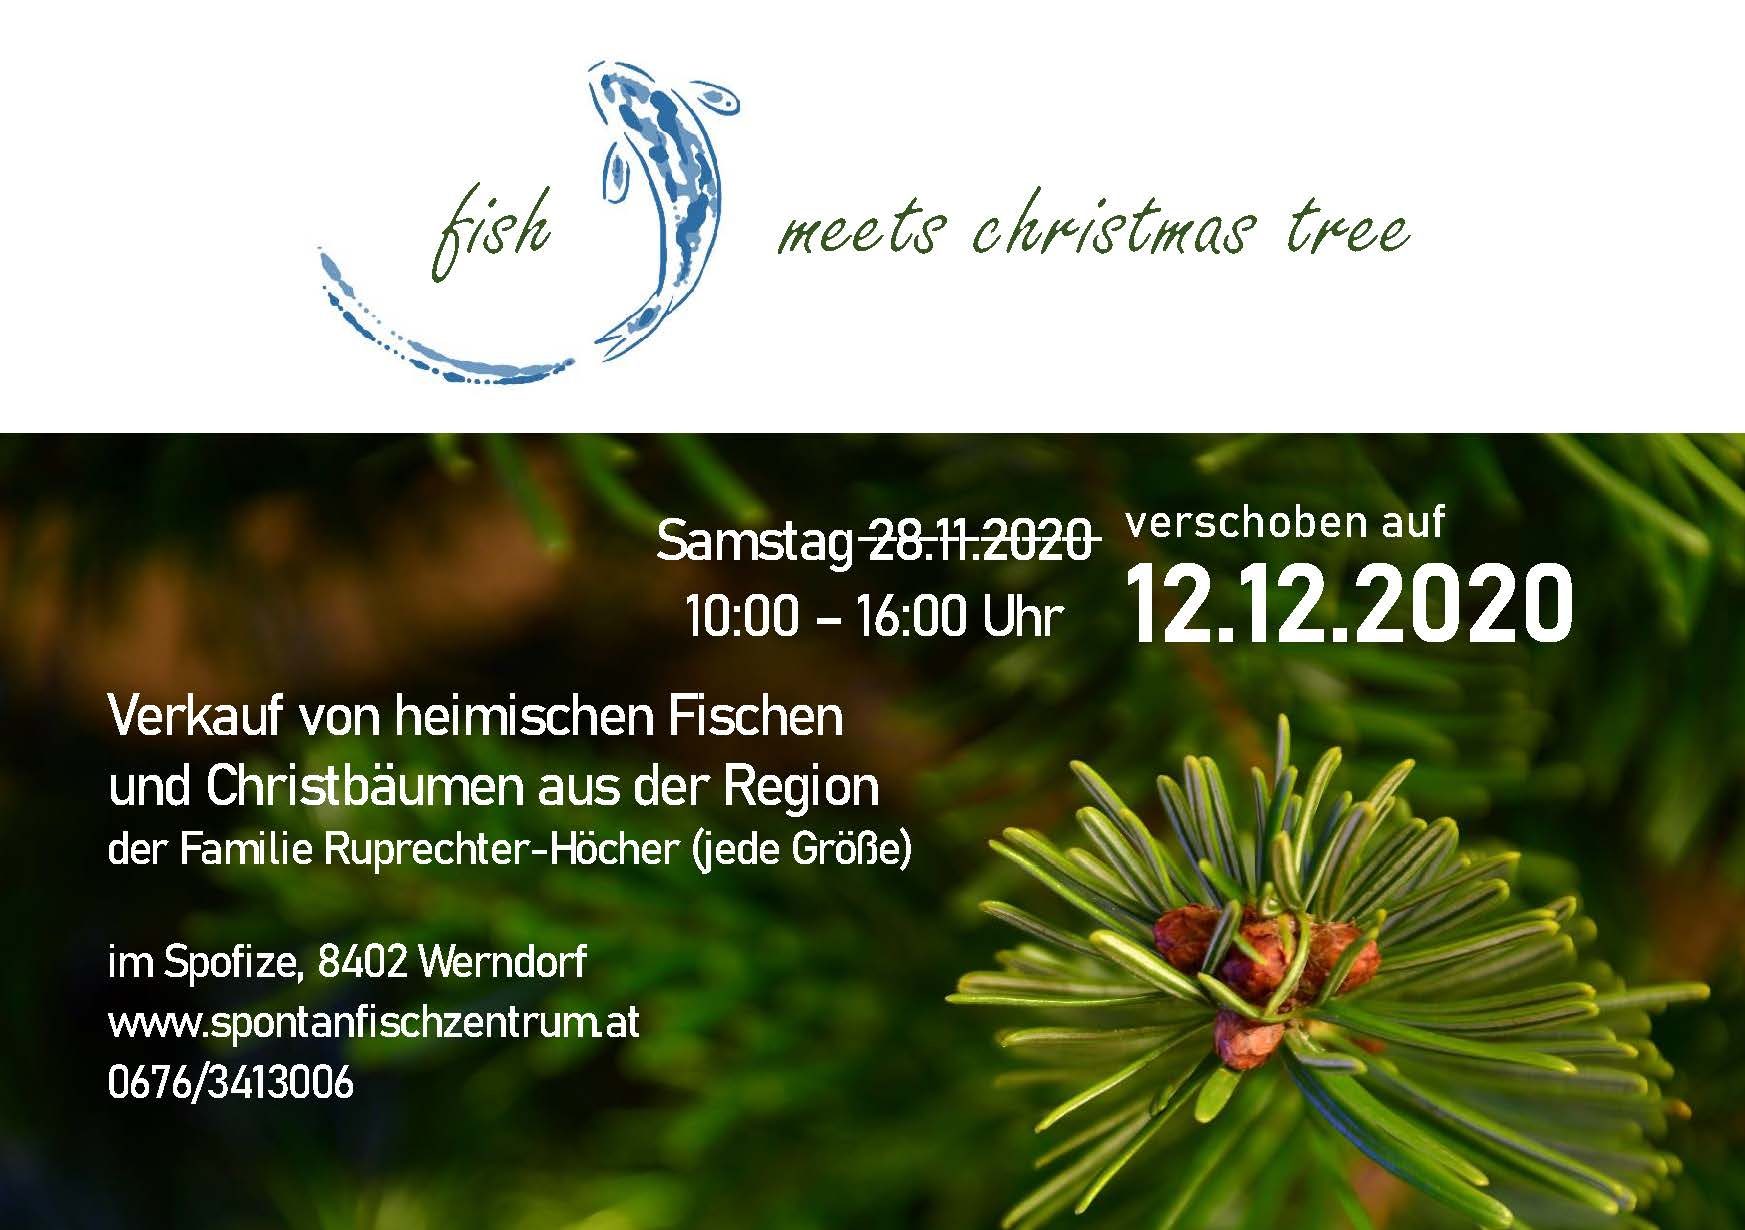 Fish meets Christmas tree_neu 12.12.2020